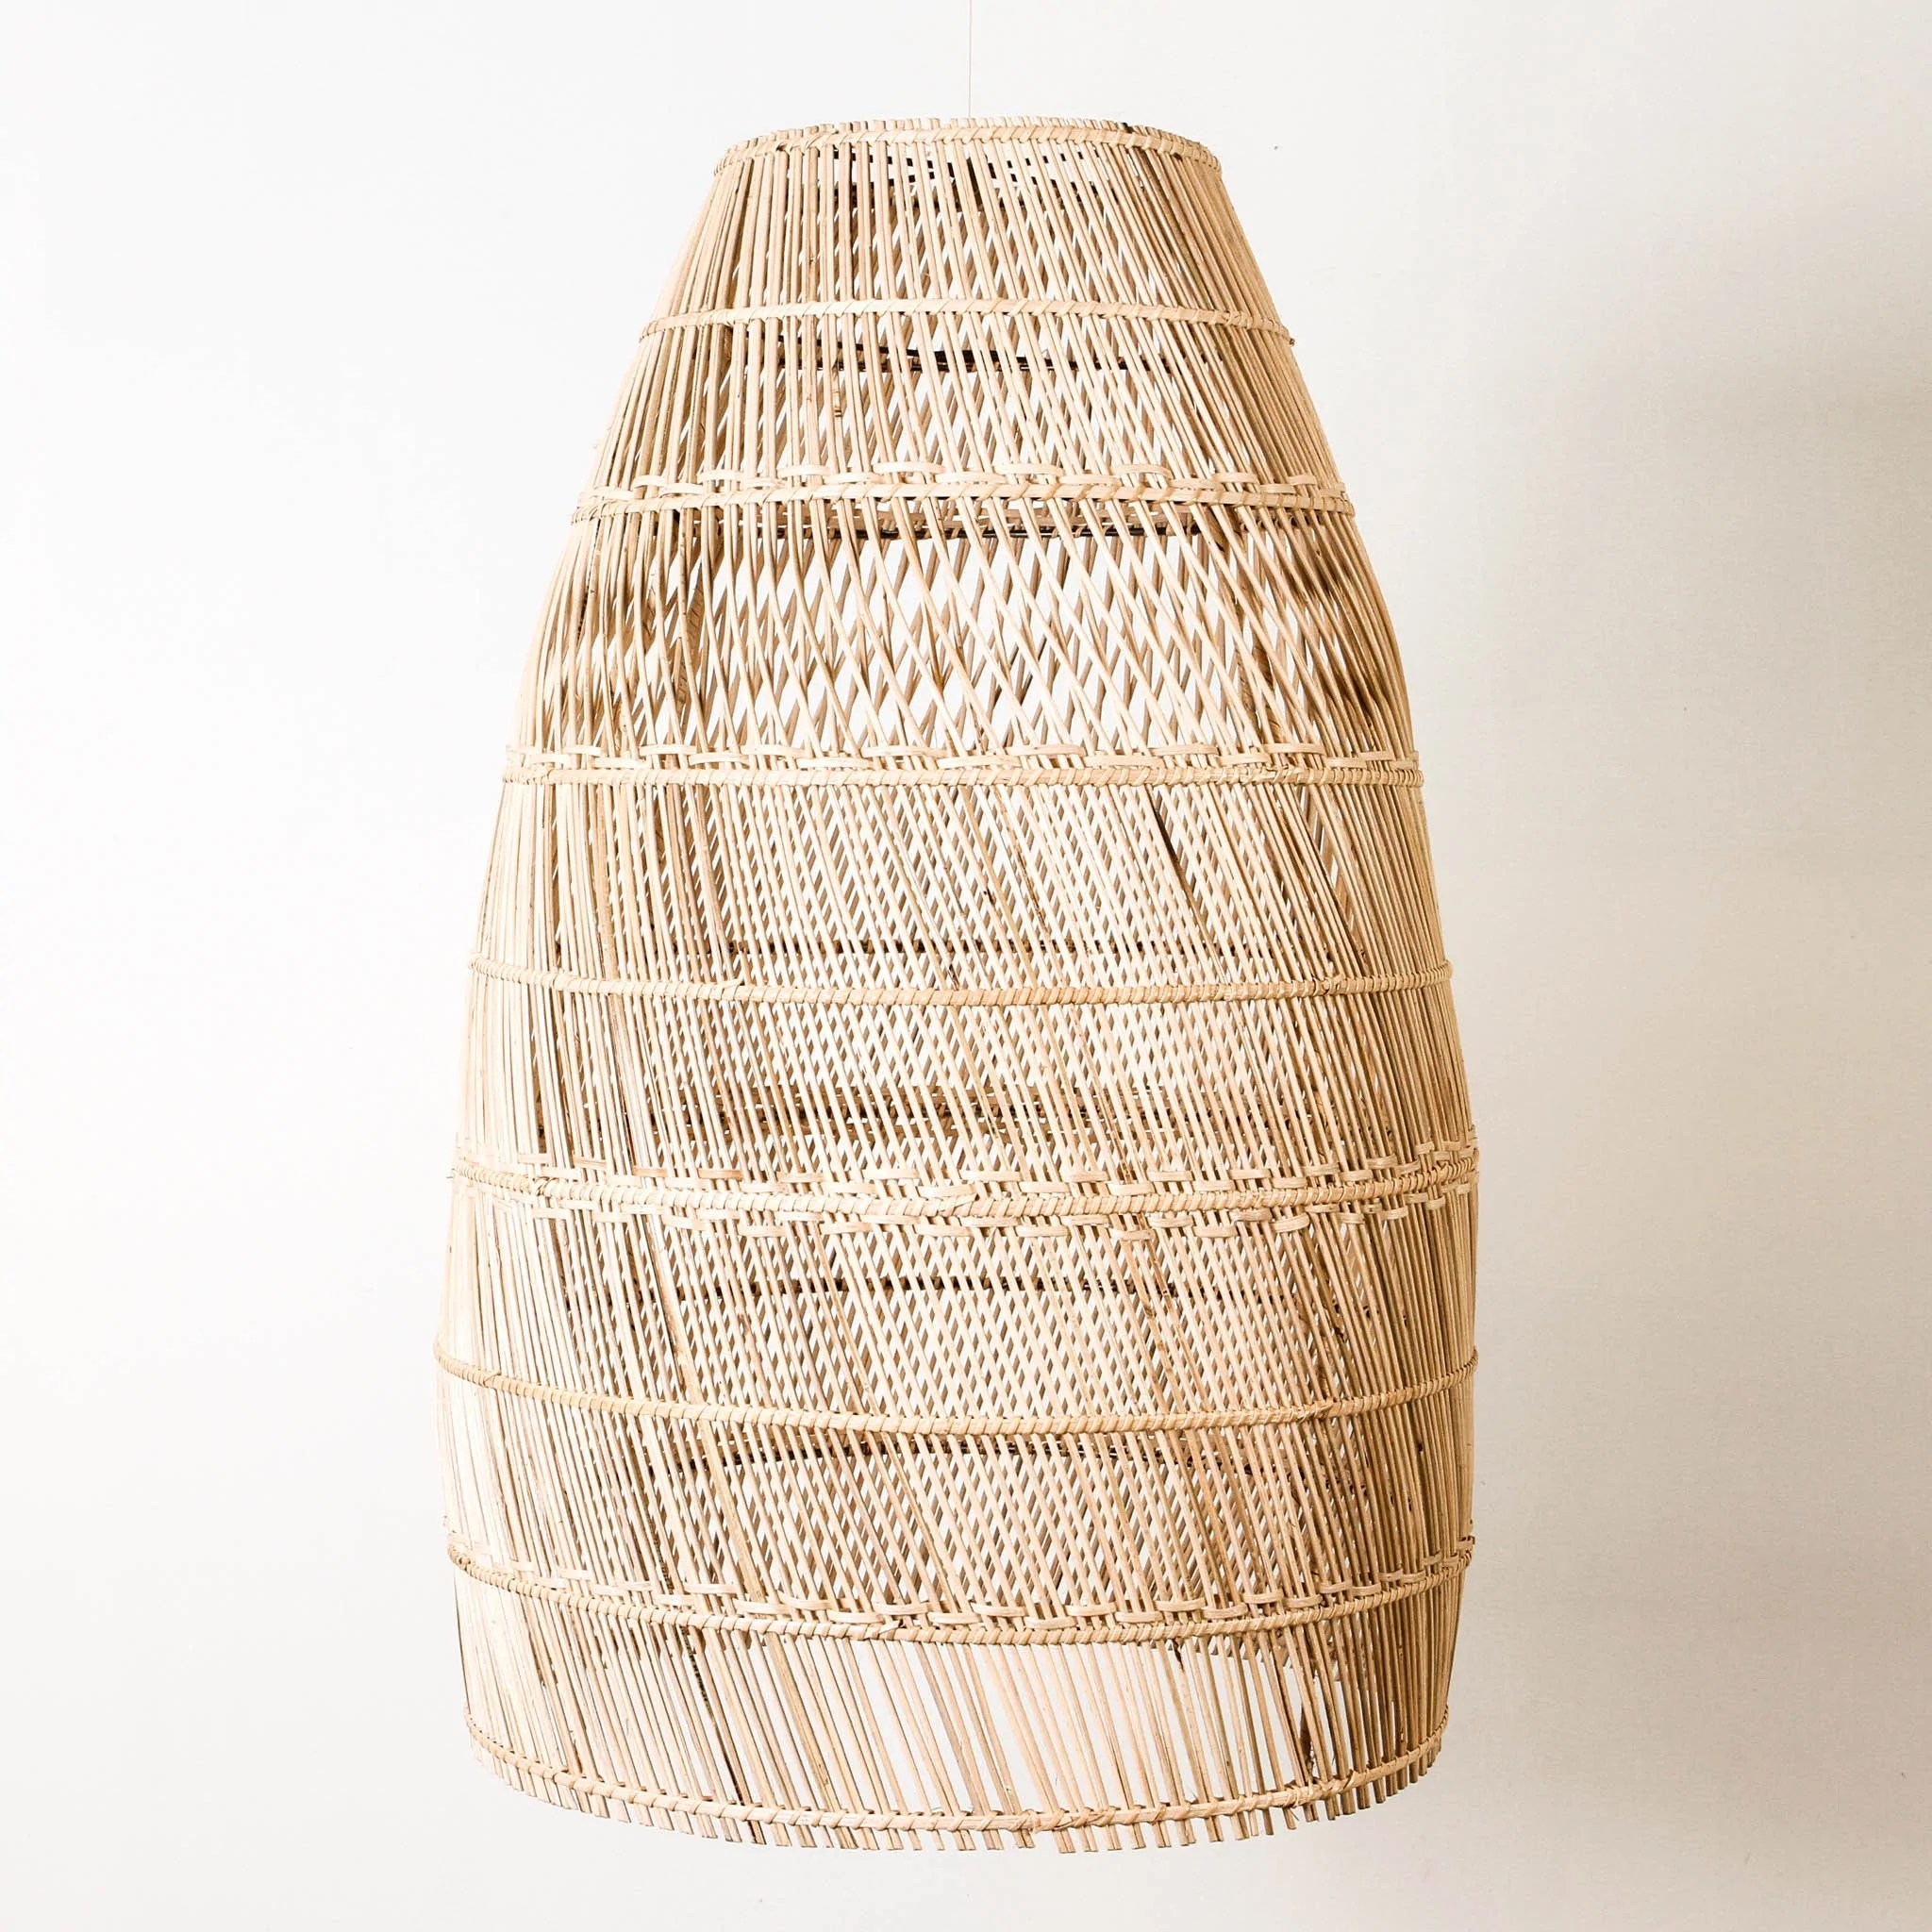 Hängelampe Rattan St Martin Rattan Light Shade Indigo Love Collectors